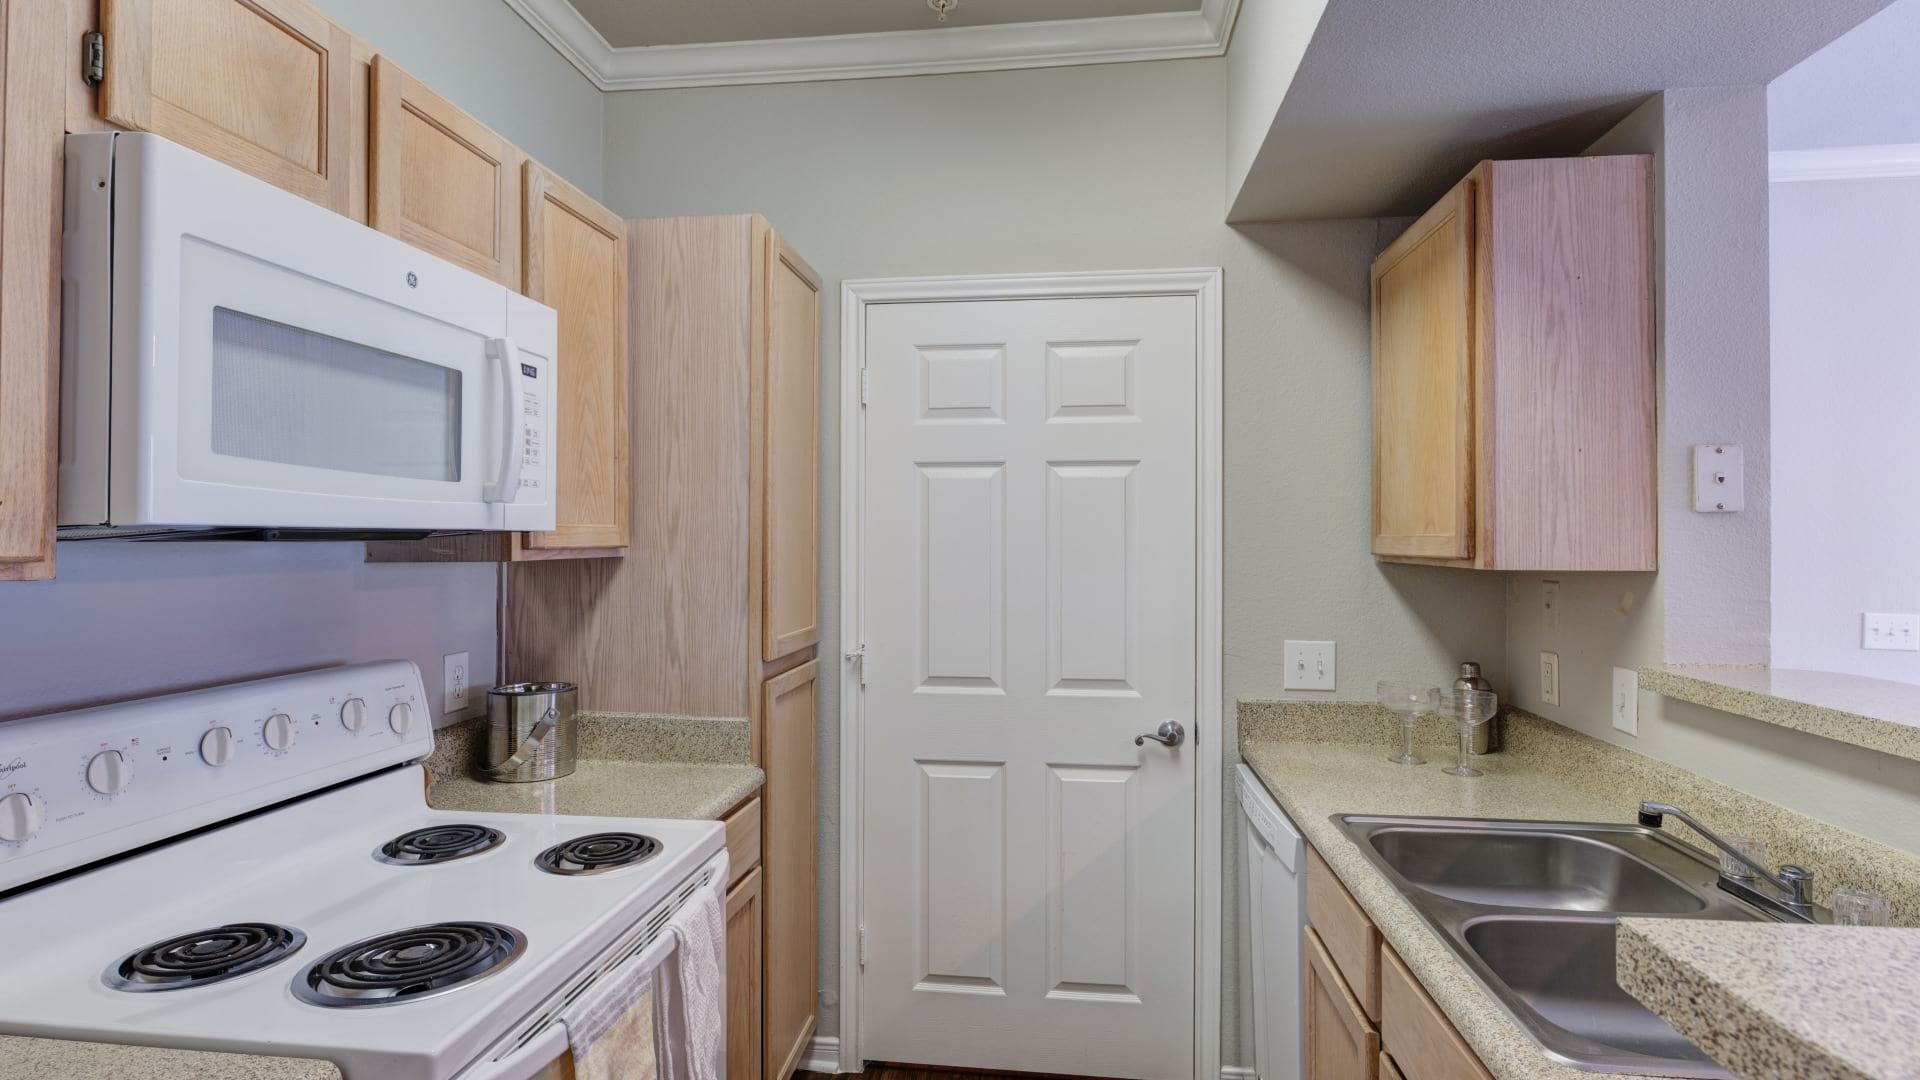 Cozy kitchen with light colored cabinets